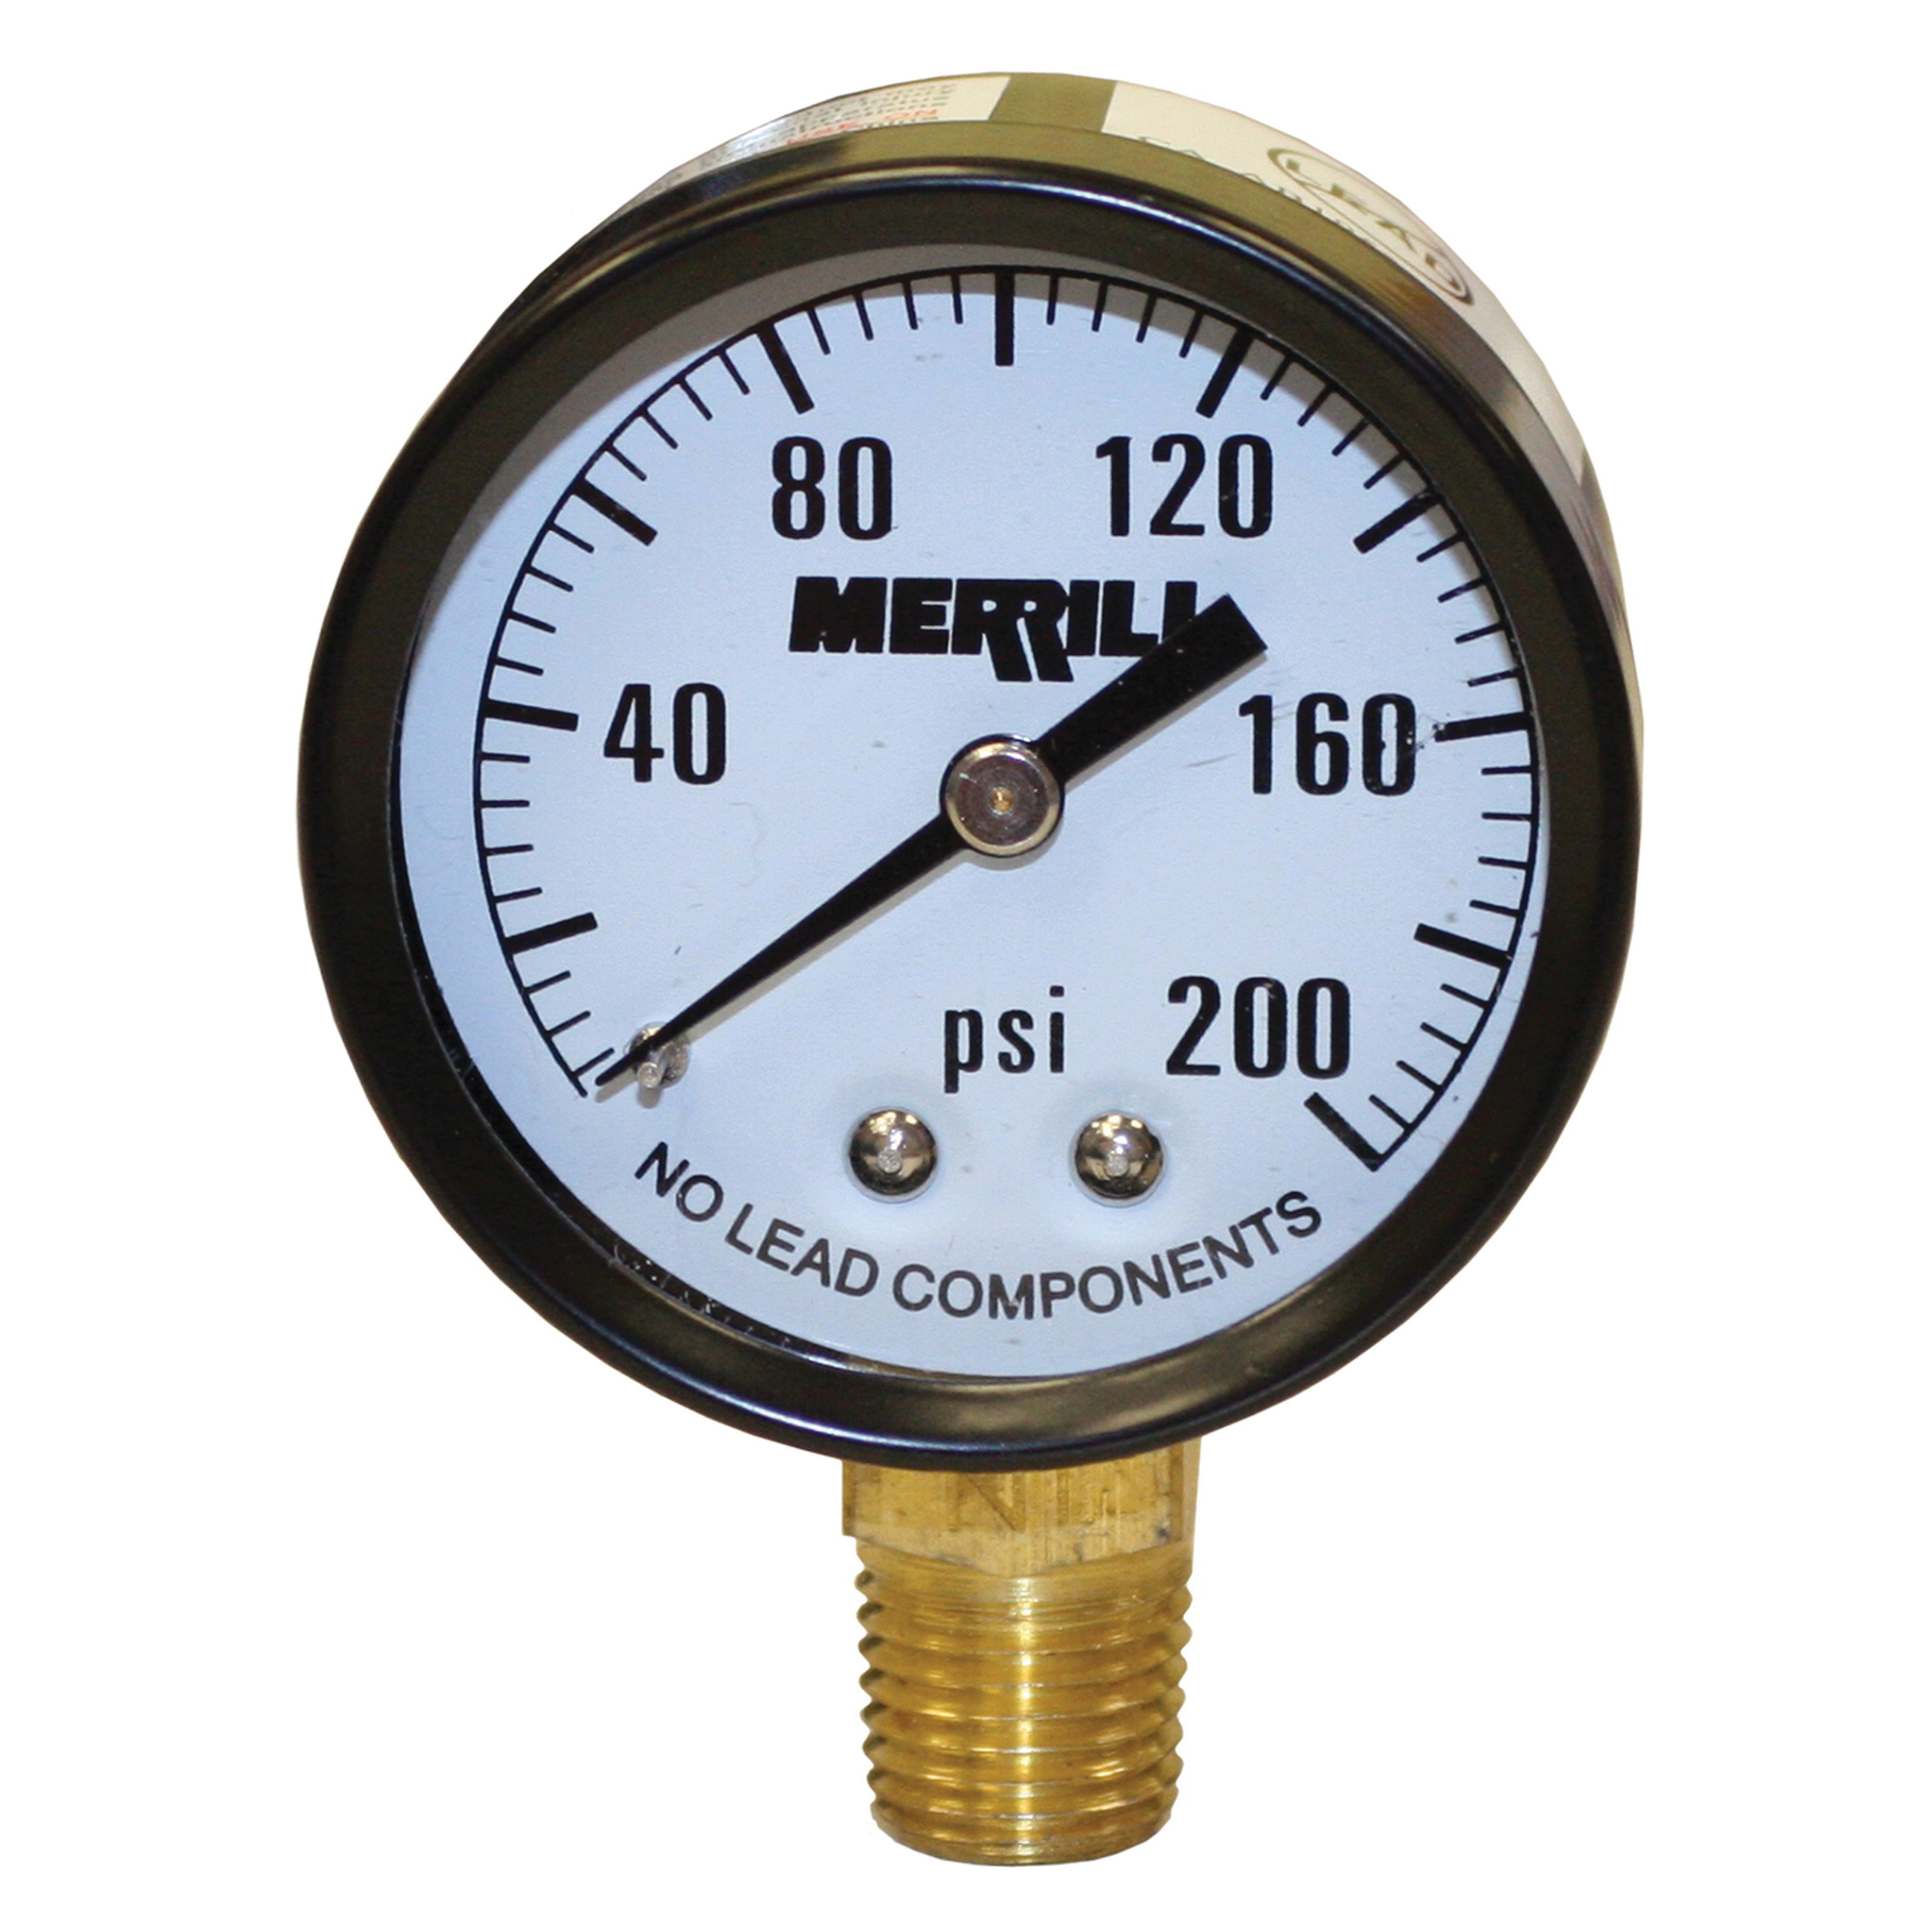 Merrill PGNL200 Pressure Gauge, 2 in Dial, 0 to 200 psi, 1/4 in MNPT Lower Mount, /-3-2-3% Accuracy, Liquid Filled: No